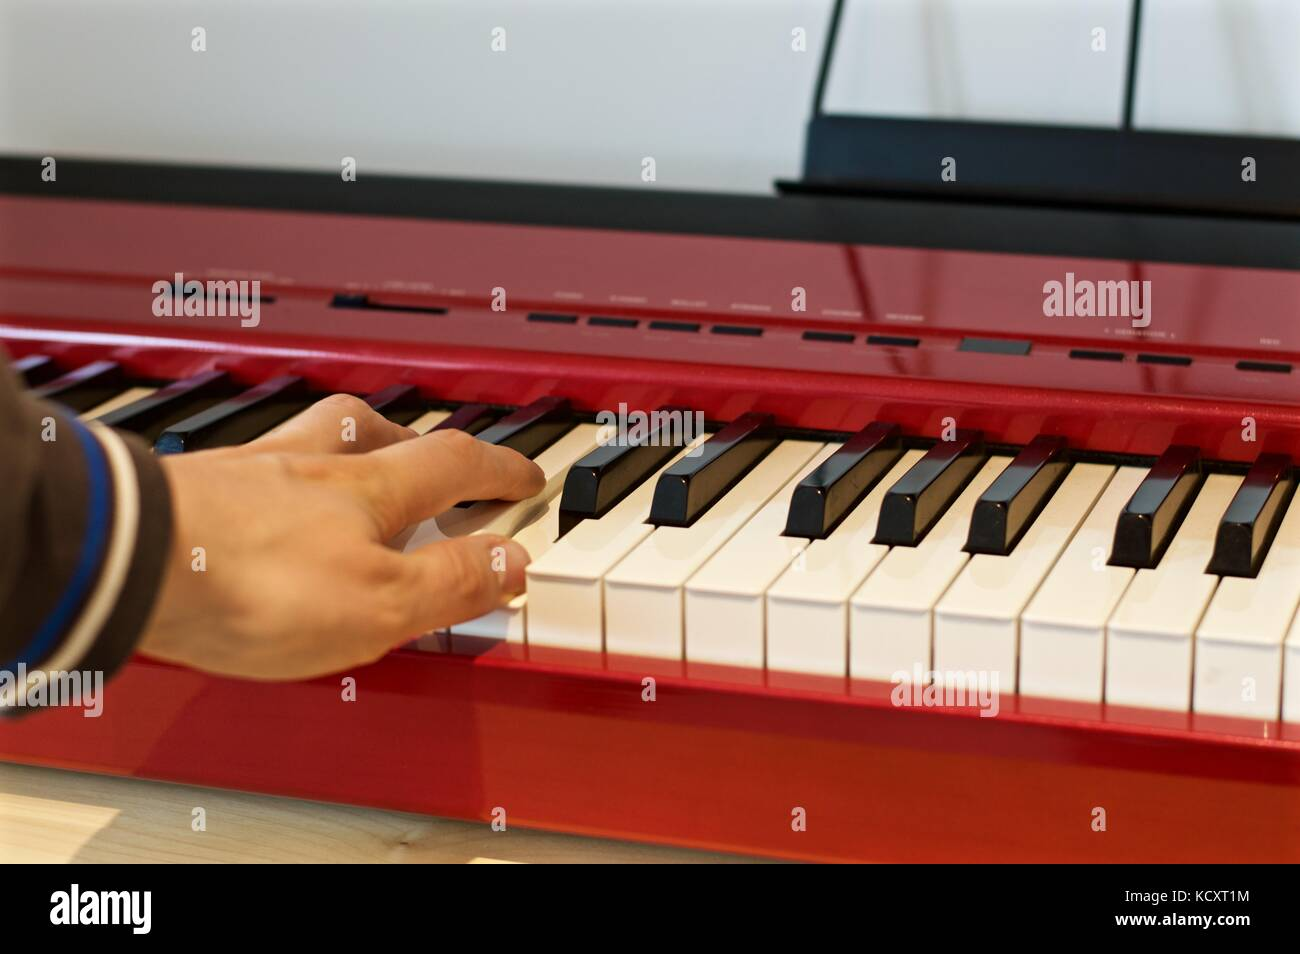 Roland FP-8 electric keyboard - Stock Image